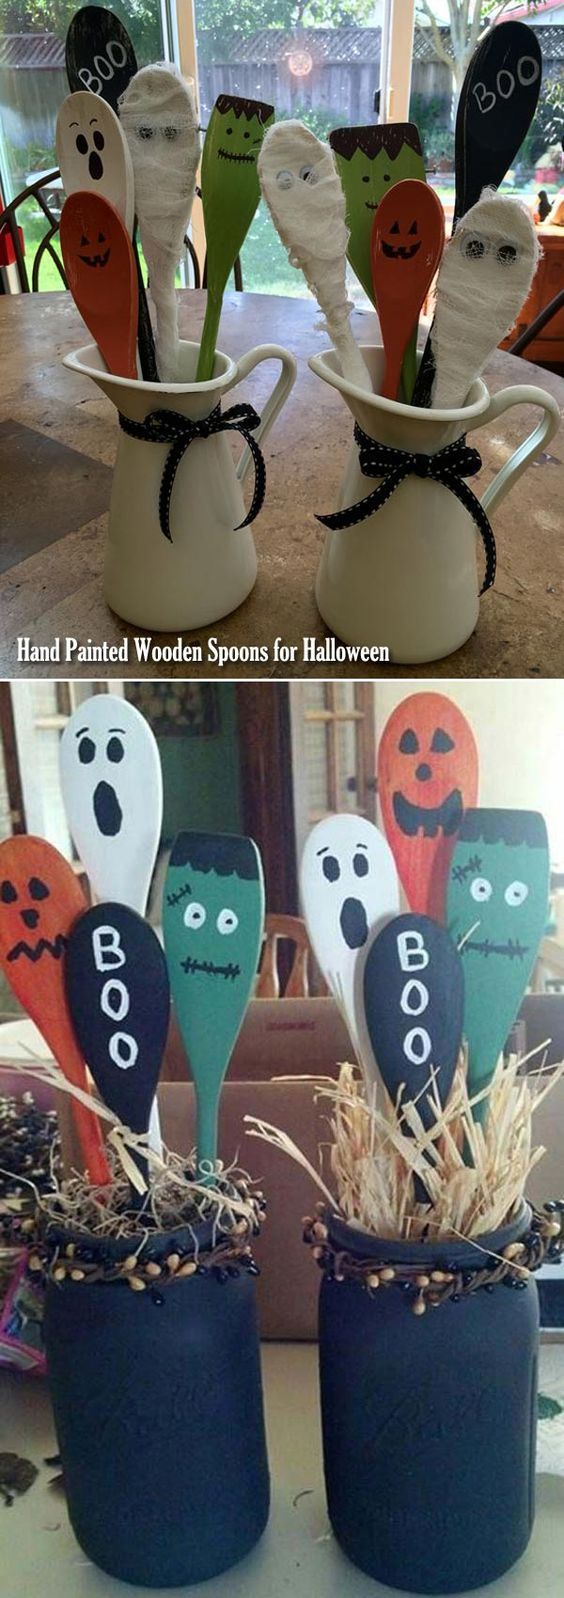 Hand painted wooden spoons in mason jars can be the decoration of Halloween kitchen countertop.